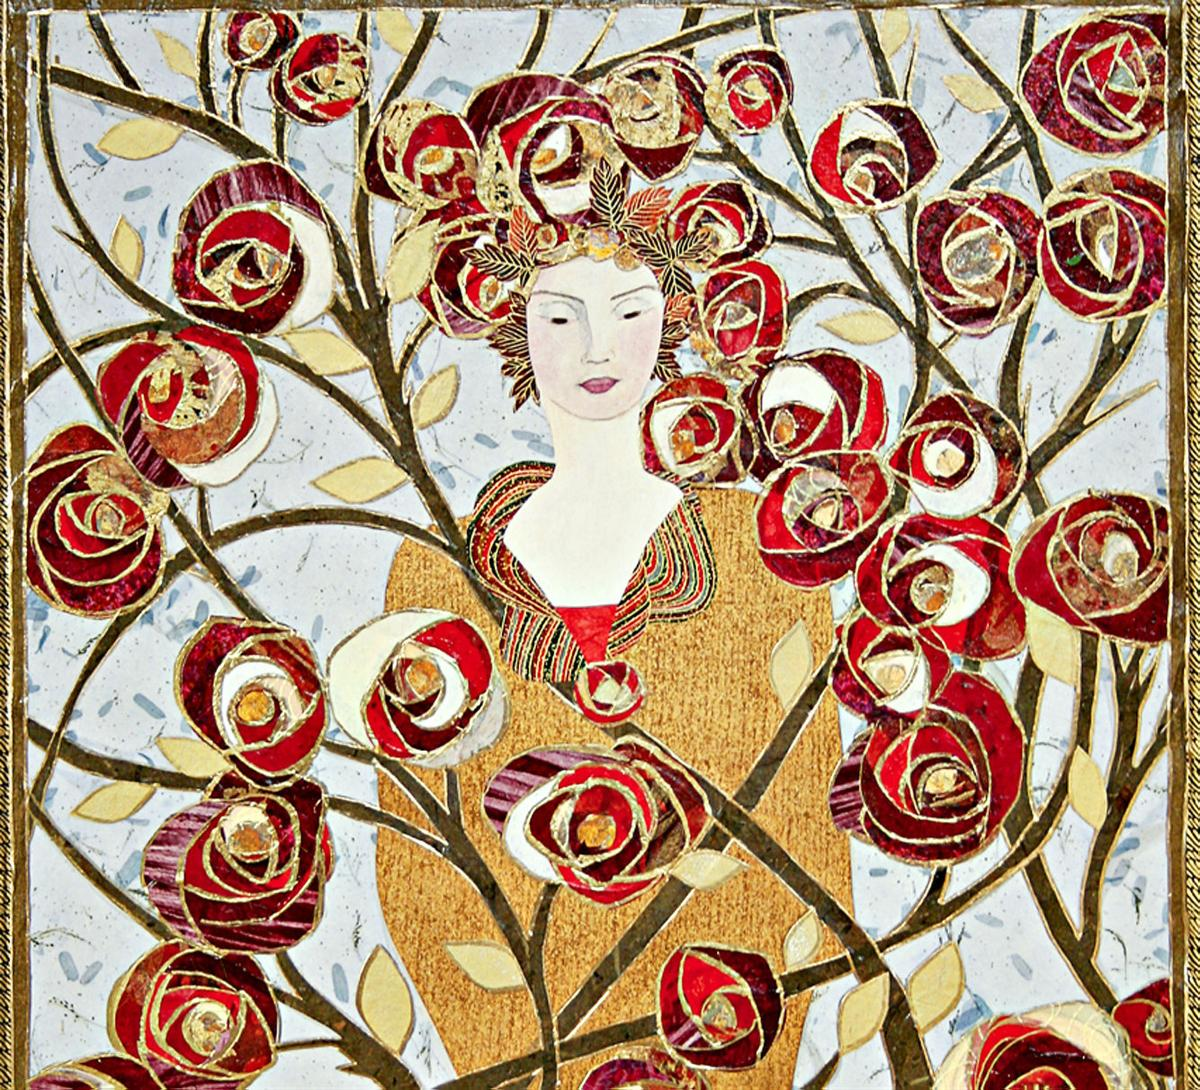 fairy tale roses by Anna Tewes